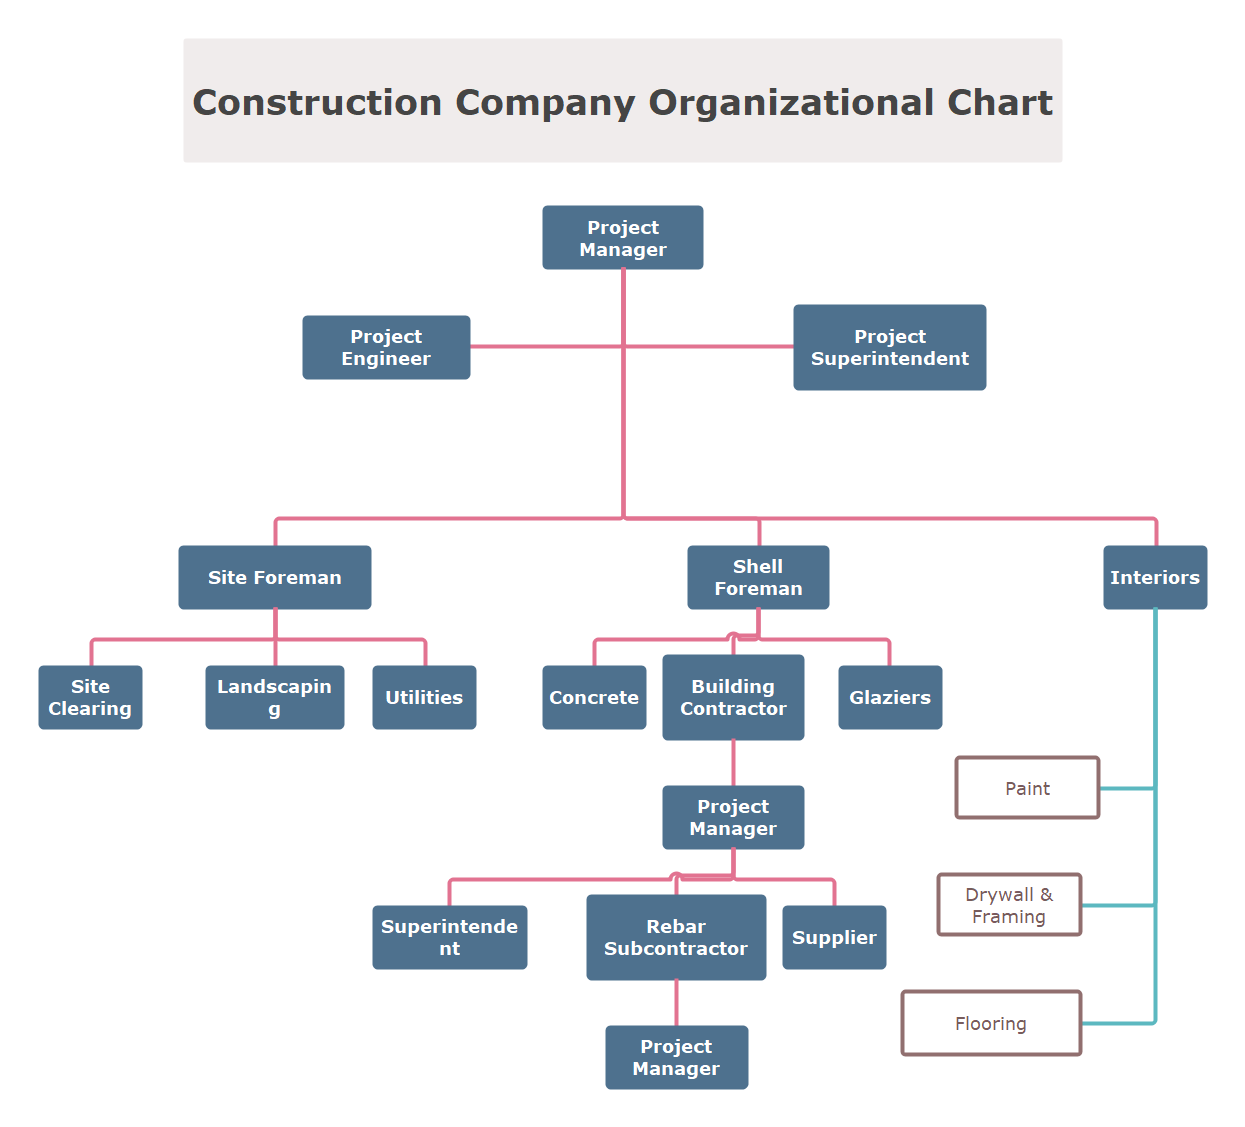 Construction Company Organizational Chart Template